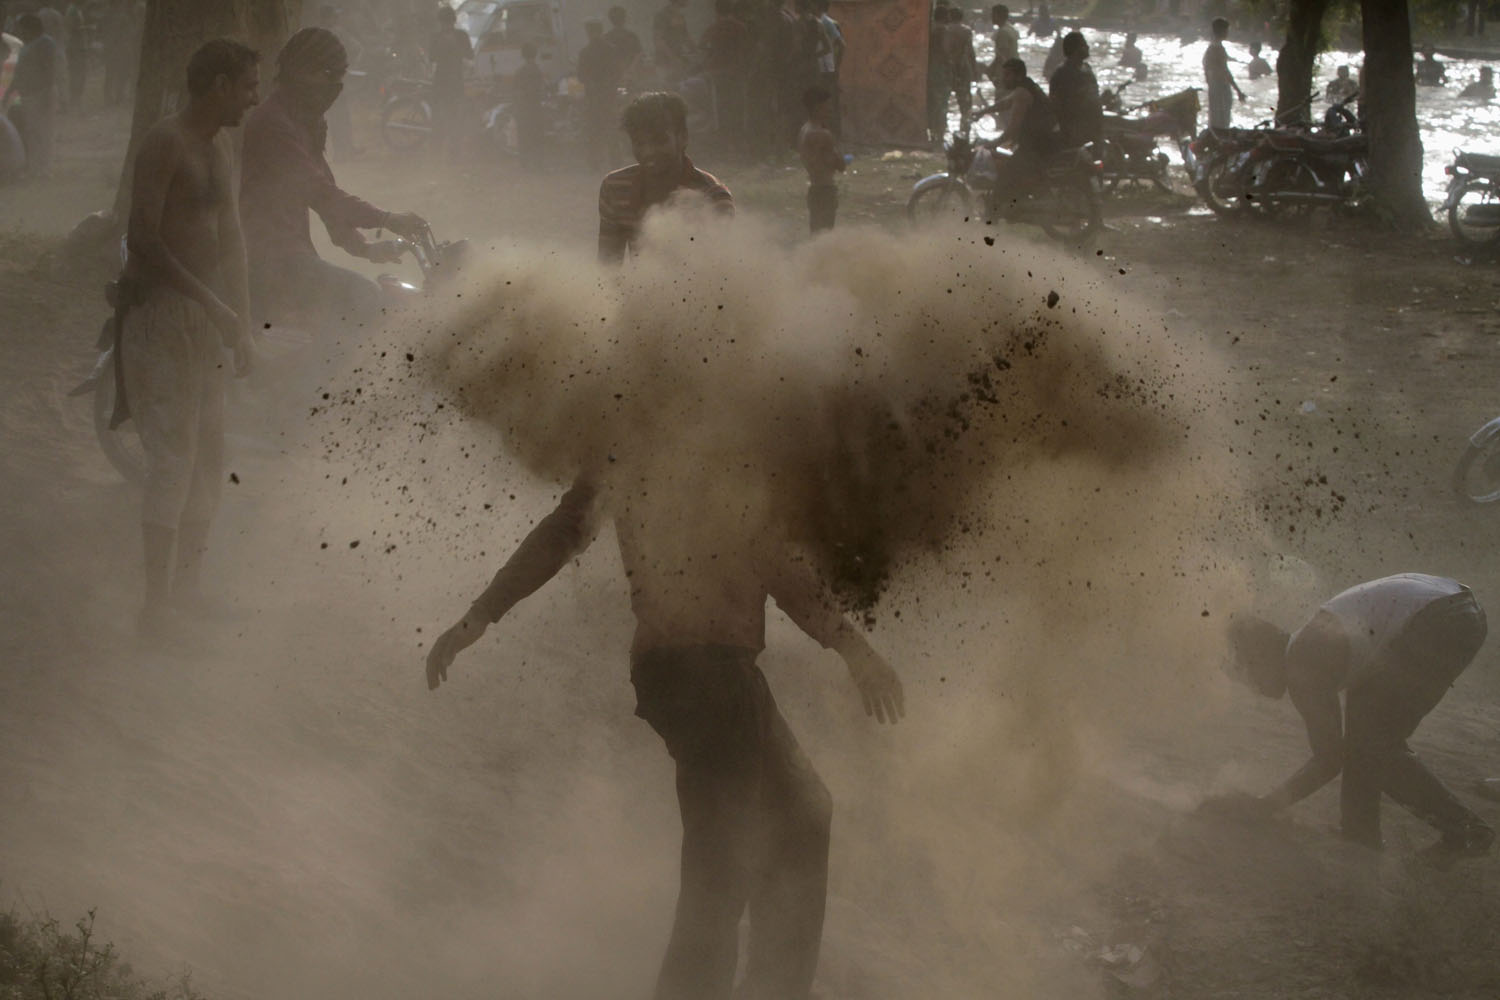 Jun. 8, 2014. Locals play with dirt before a dip to cool off in a nearby canal on a hot day in Lahore.